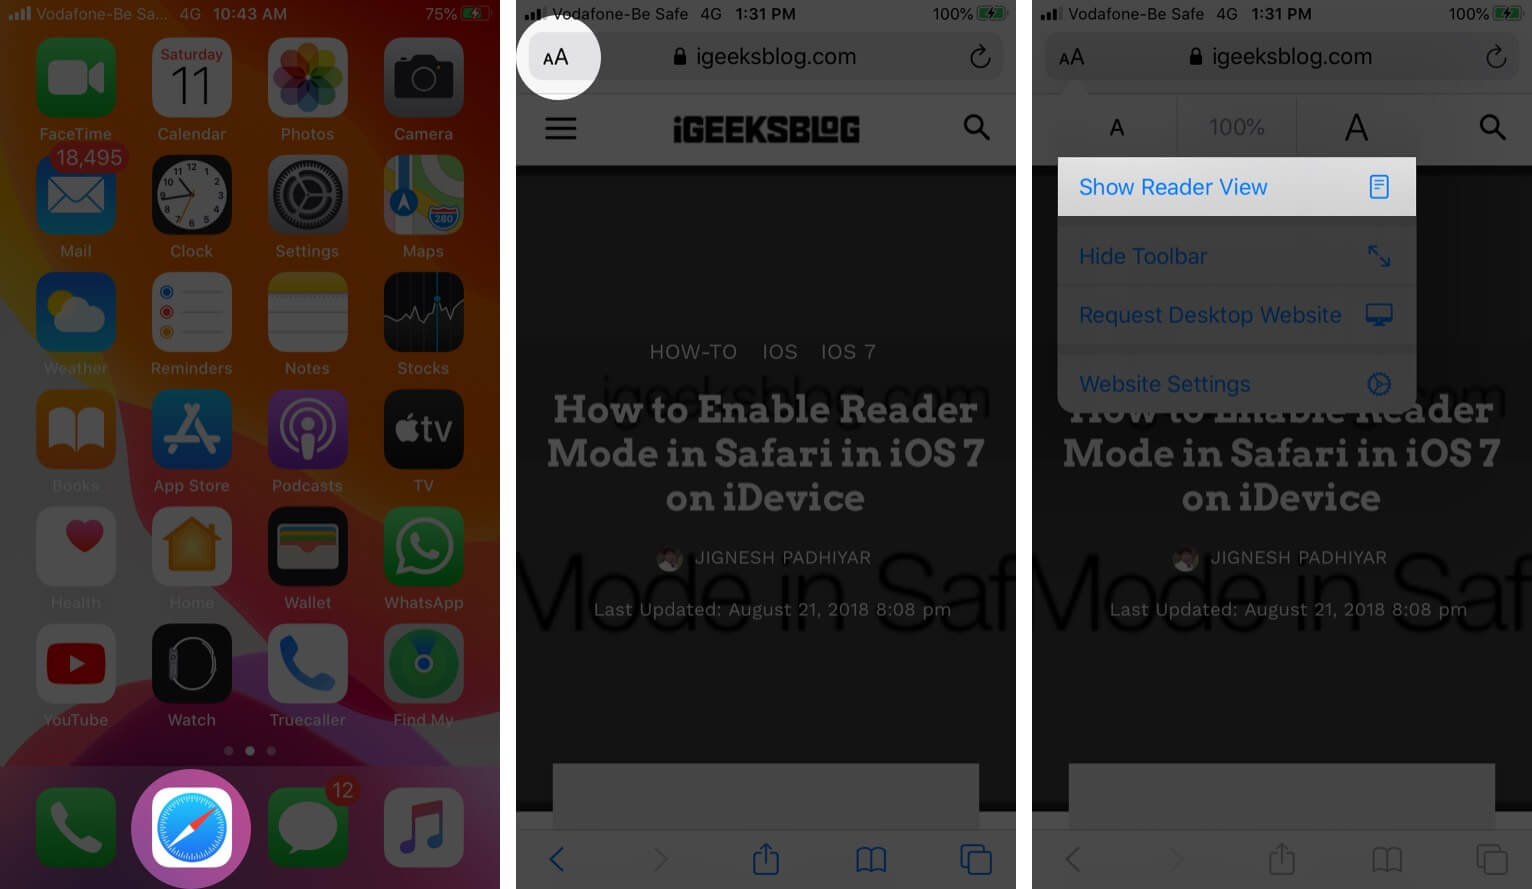 Open Safari Tap on AA and Then Tap on Show Reader View